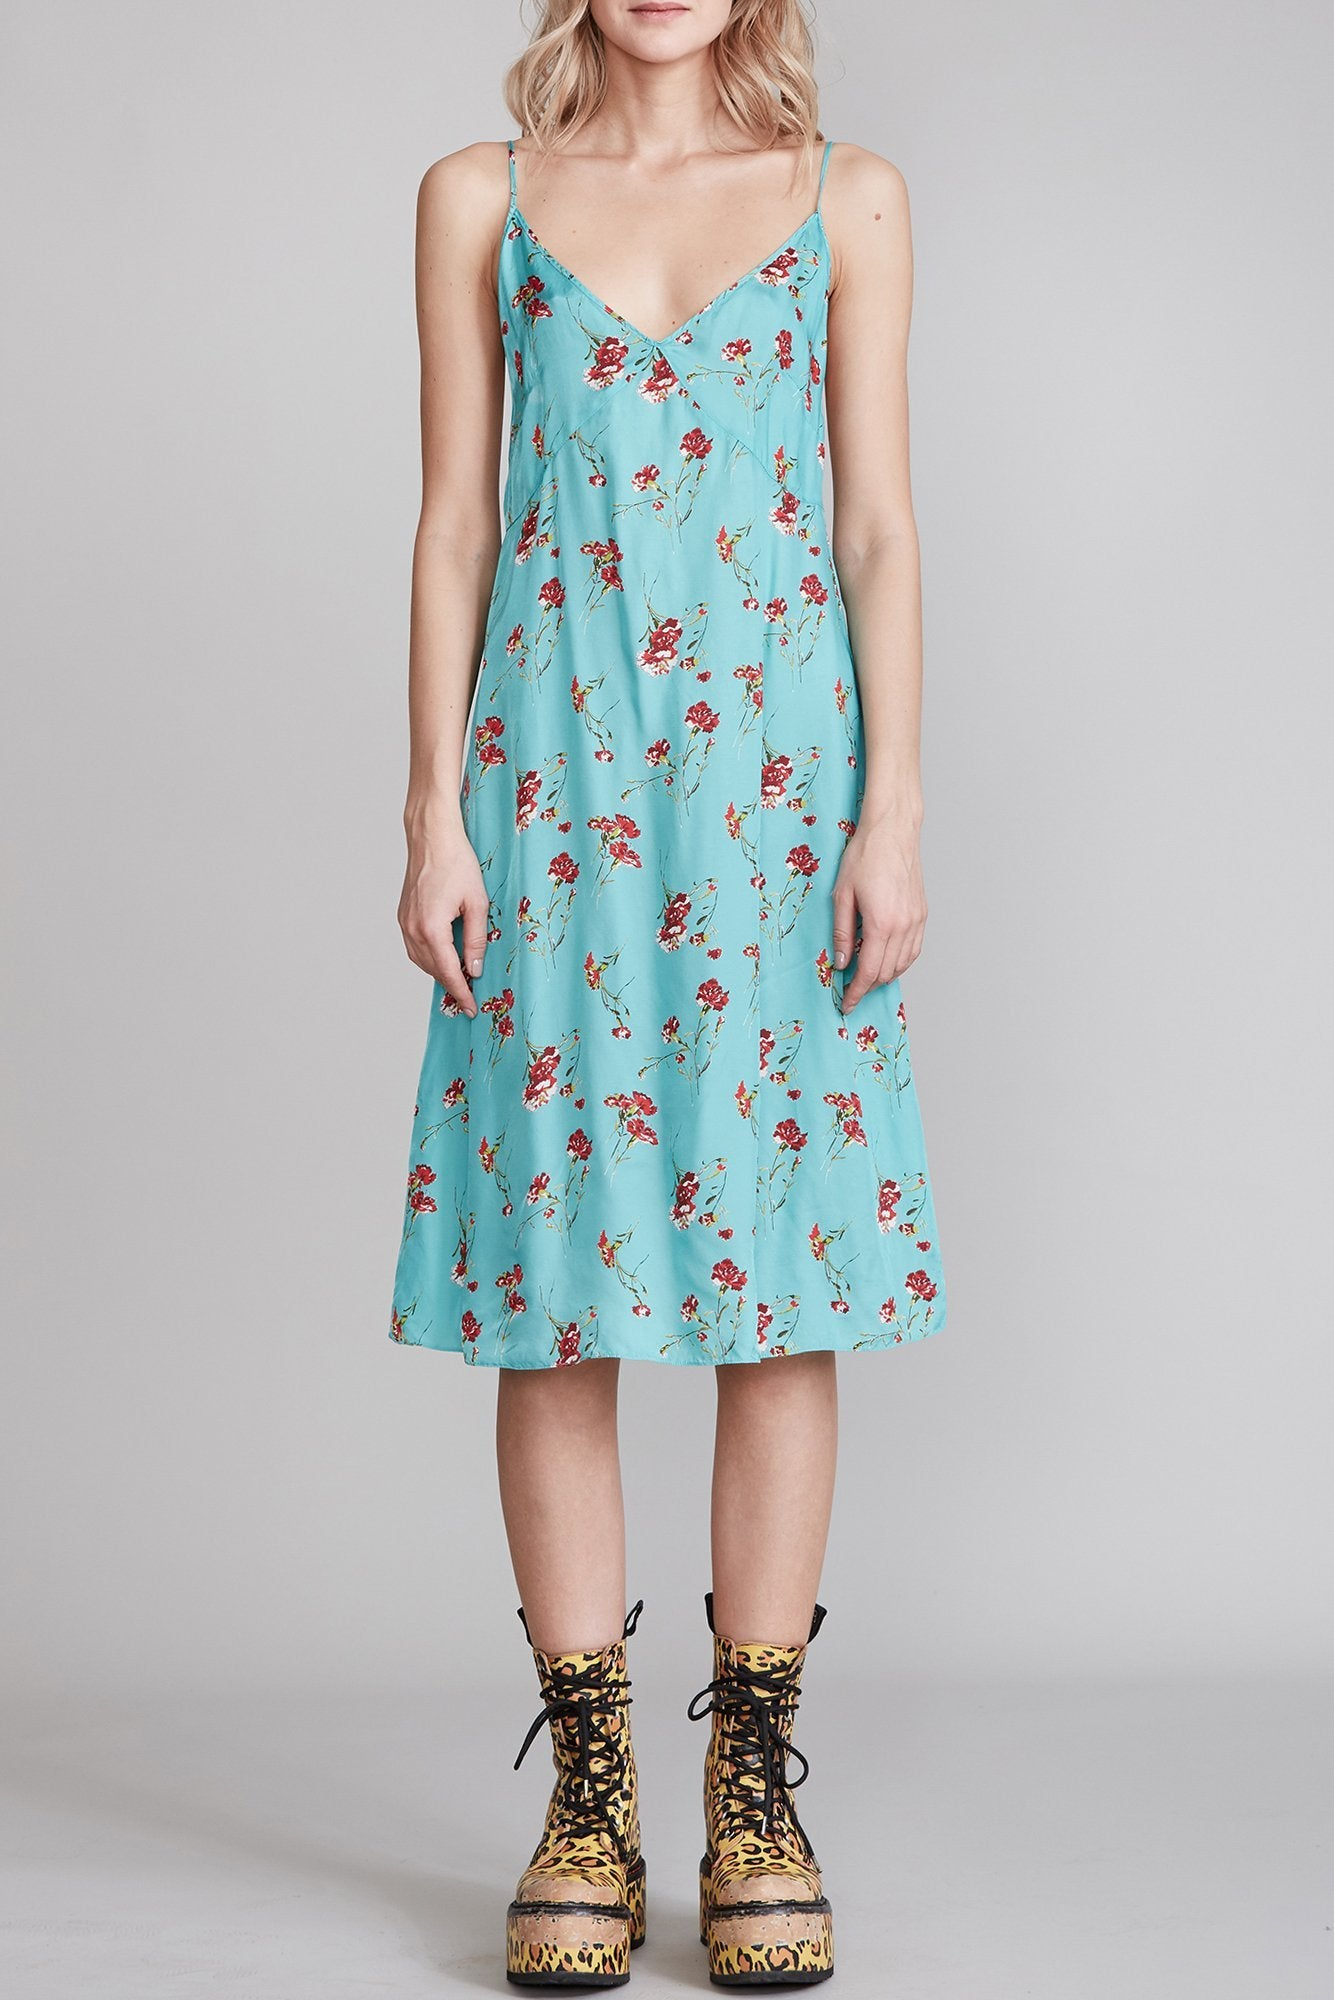 Midi Slip with Back Tie - Light Blue Floral